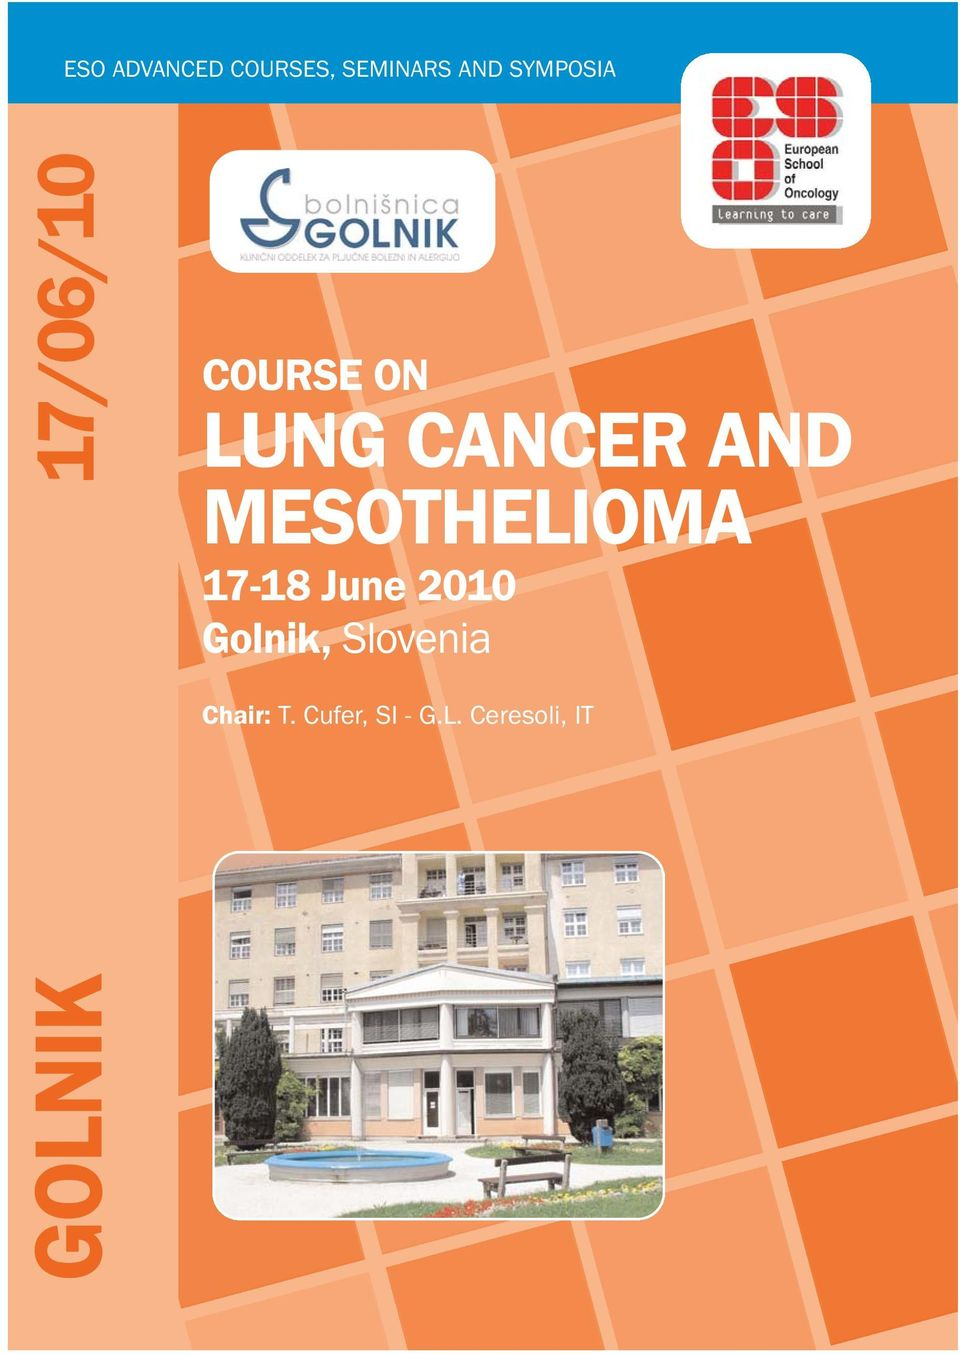 CANCER AND MESOTHELIOMA 17-18 June 2010